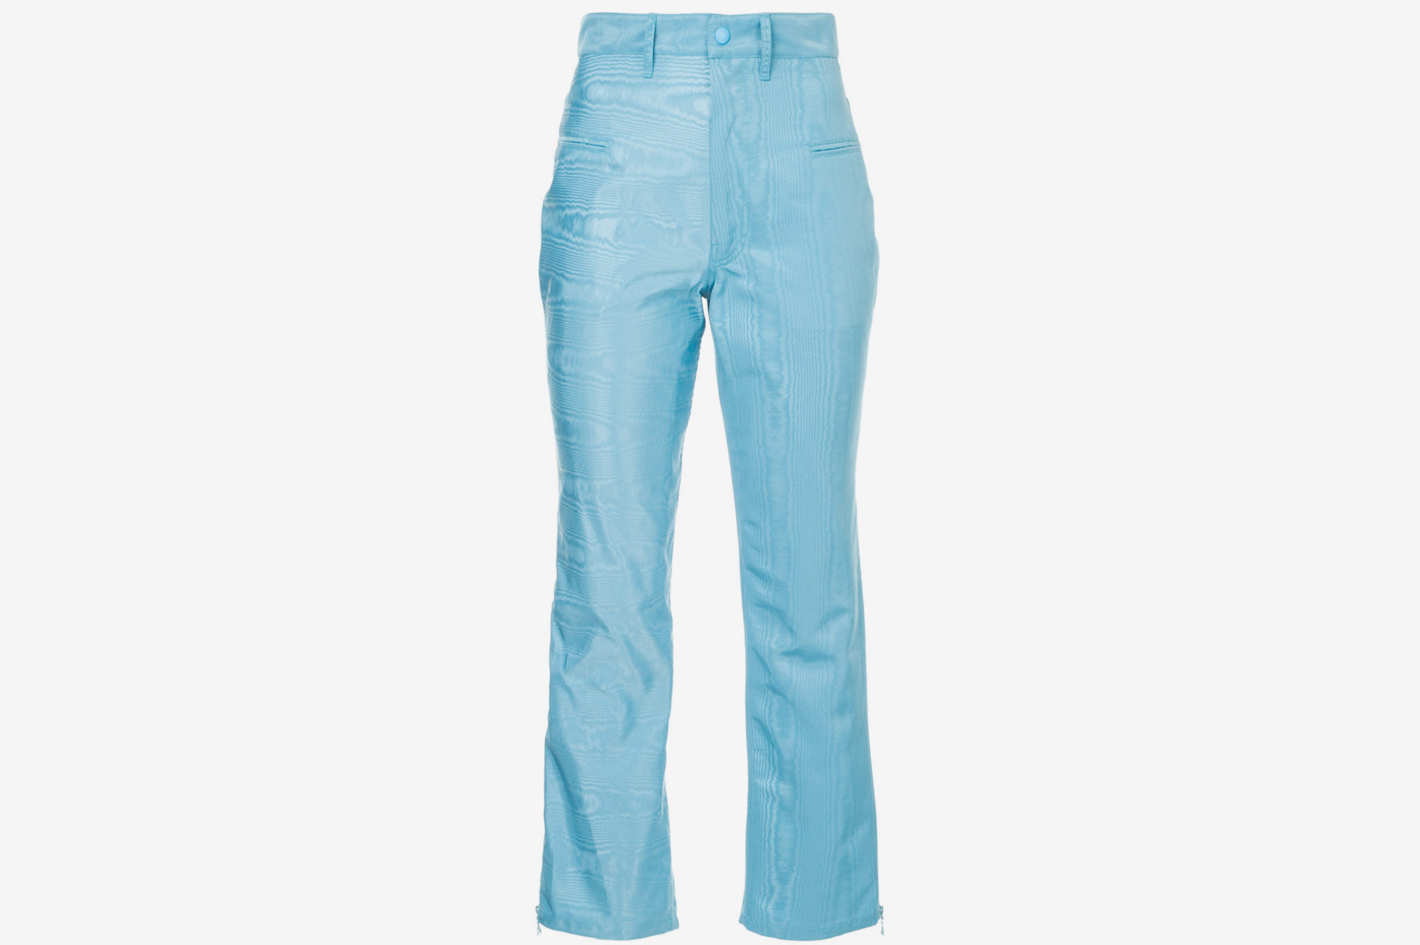 Marine Serre Moire Trousers